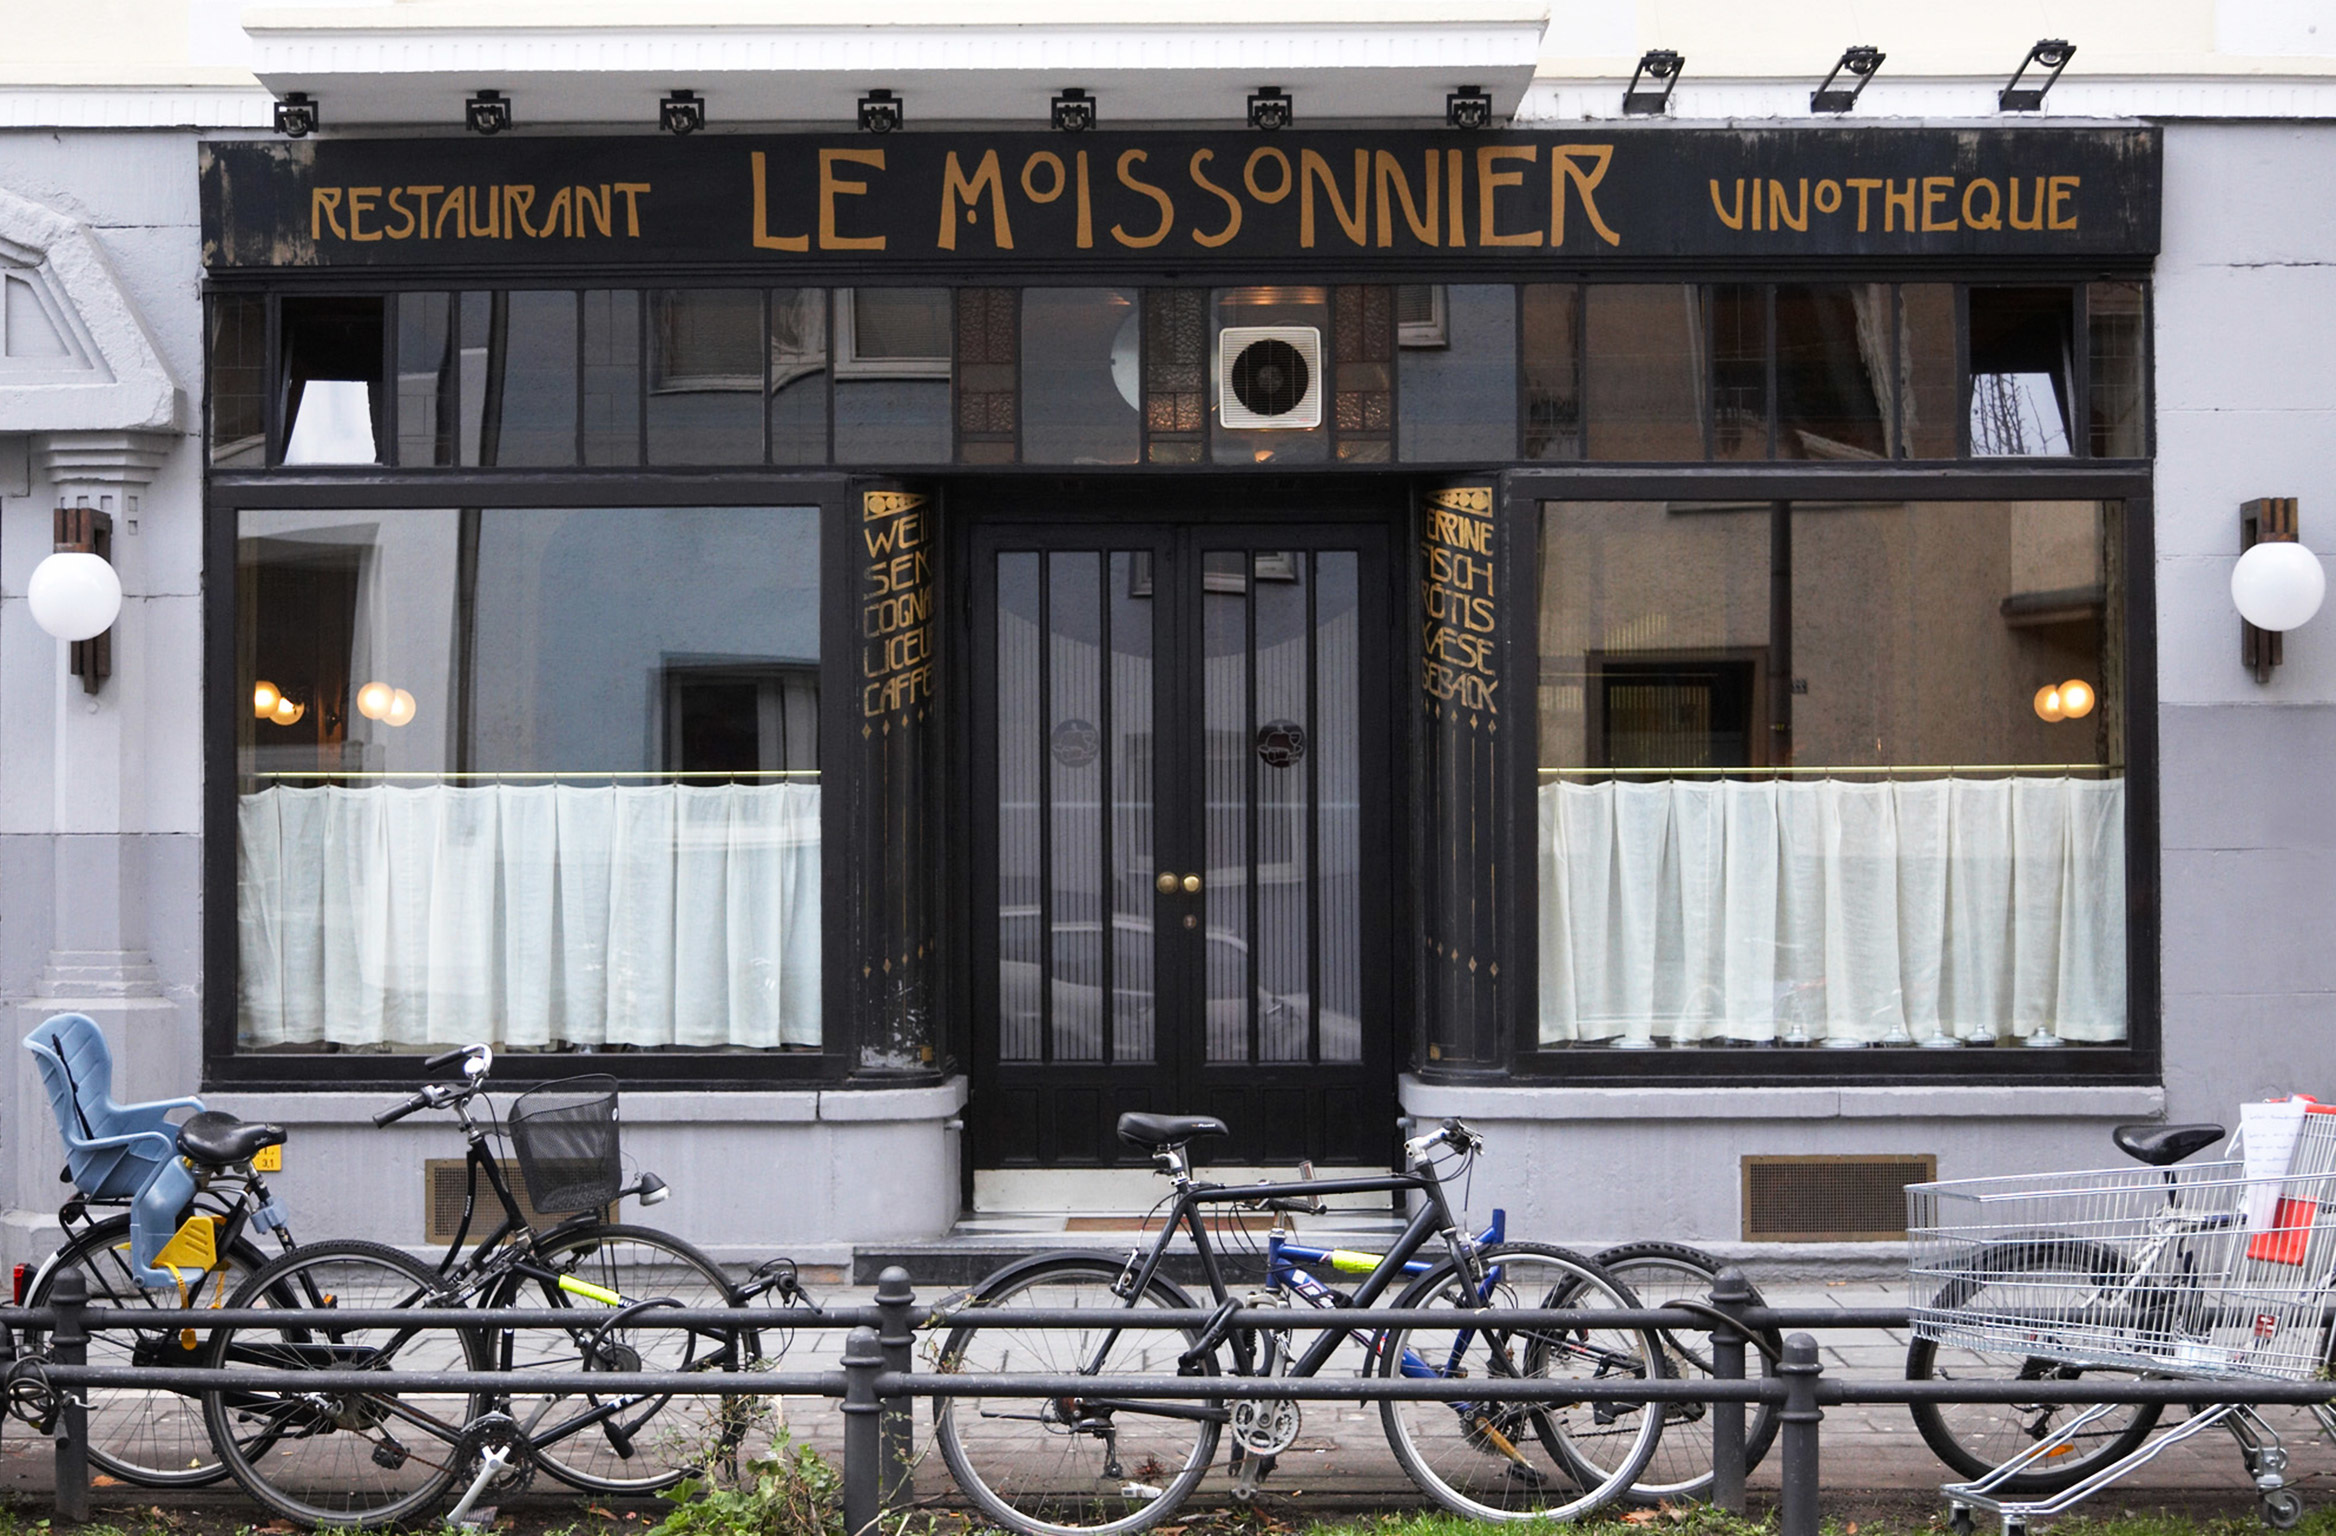 City Guide Visit The Best Restaurants In Cologne! 1